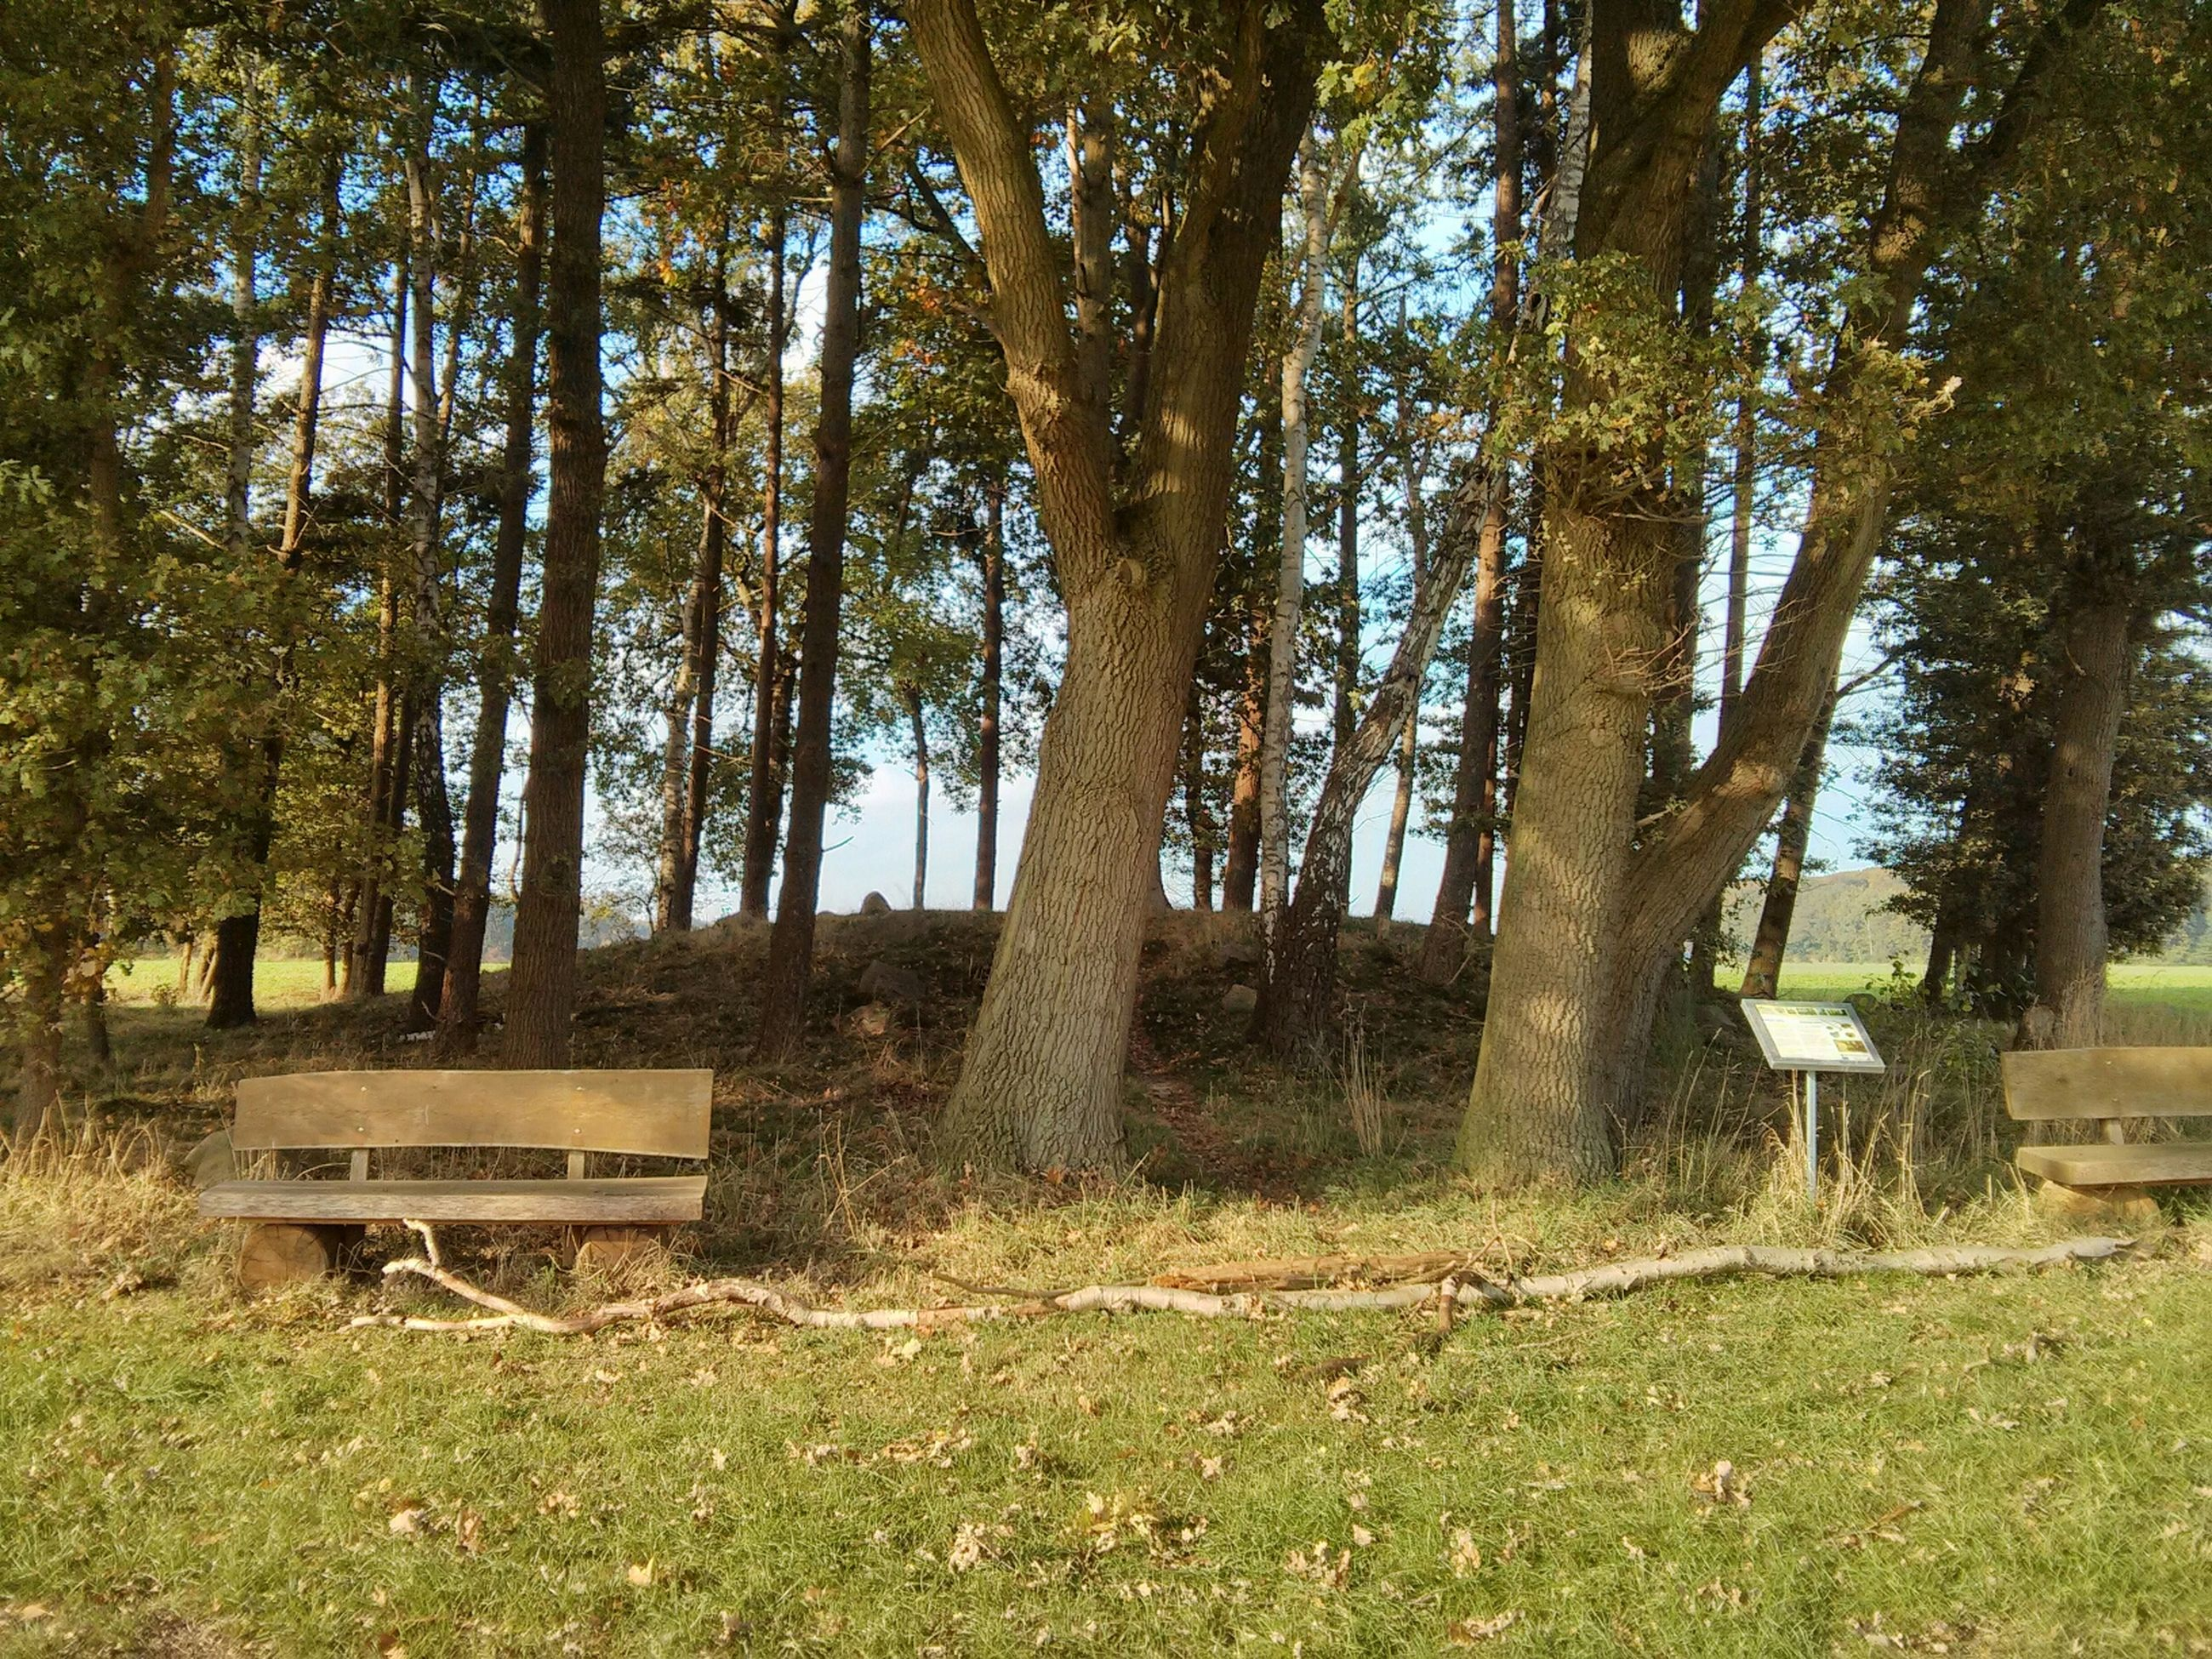 tree, tree trunk, tranquility, growth, tranquil scene, grass, nature, scenics, forest, beauty in nature, branch, green color, bench, landscape, woodland, day, field, non-urban scene, outdoors, park - man made space